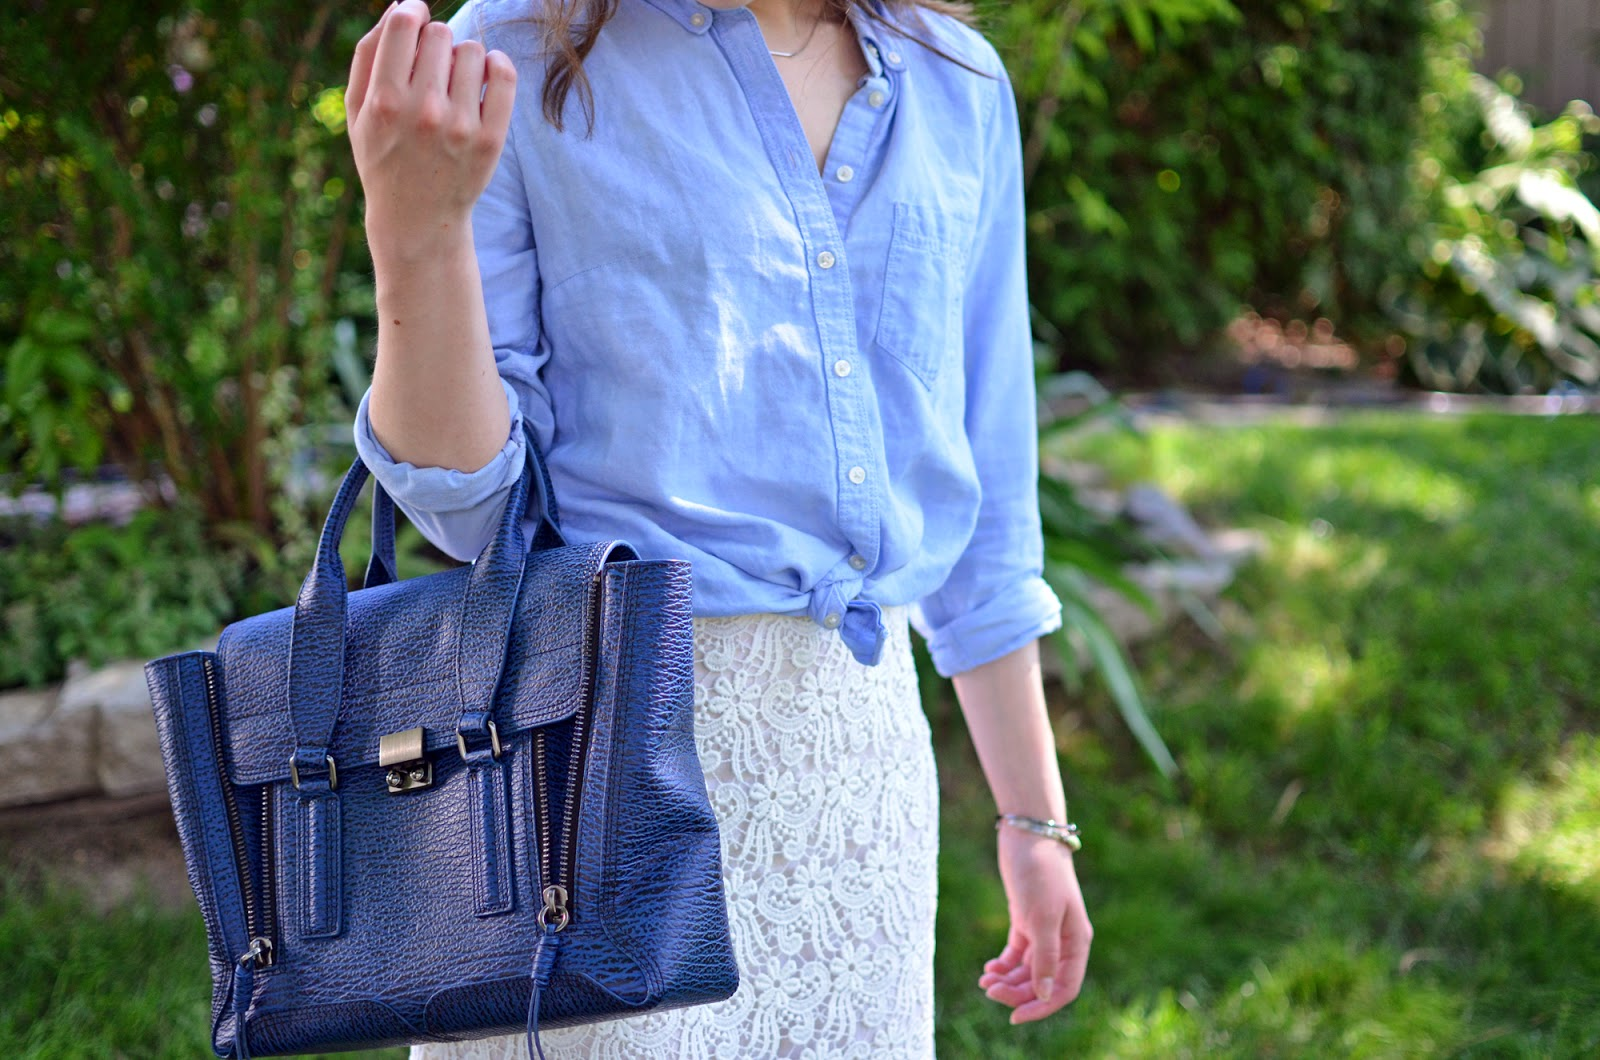 Weekend OOTD ft. a lace Zara skirt, a chambray blouse from The Gap, and my Phillip Lim Pashli bag